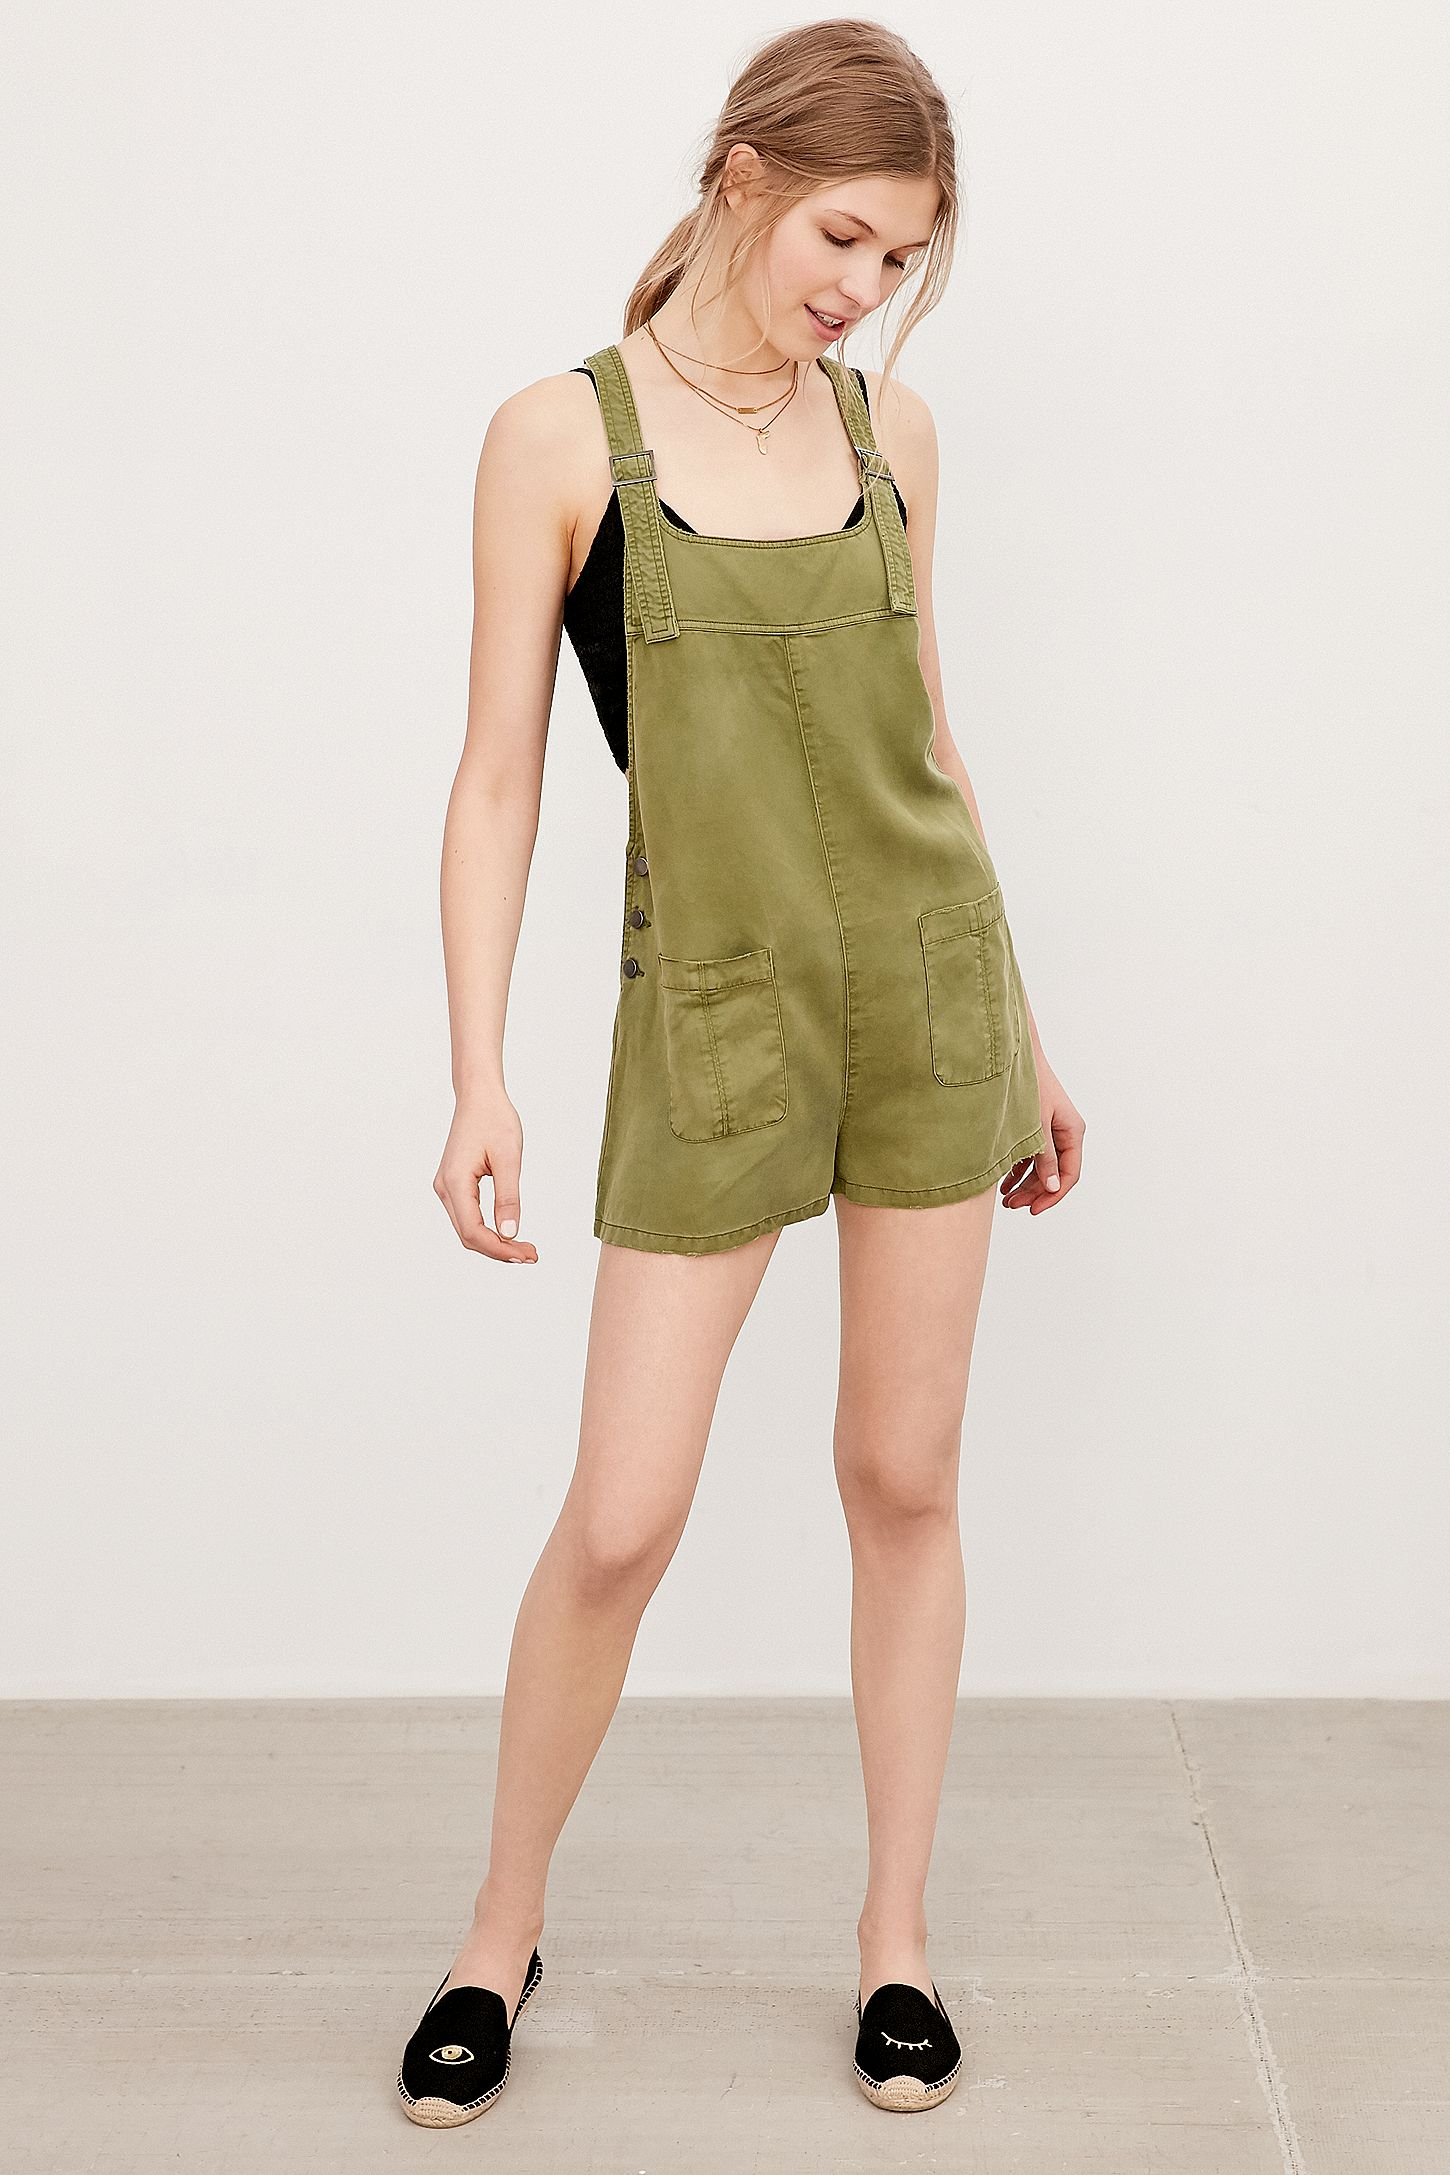 985ef12245 BDG Nicki Dungarees Khaki Playsuit. Click on image to zoom. Hover to zoom.  Double Tap to Zoom